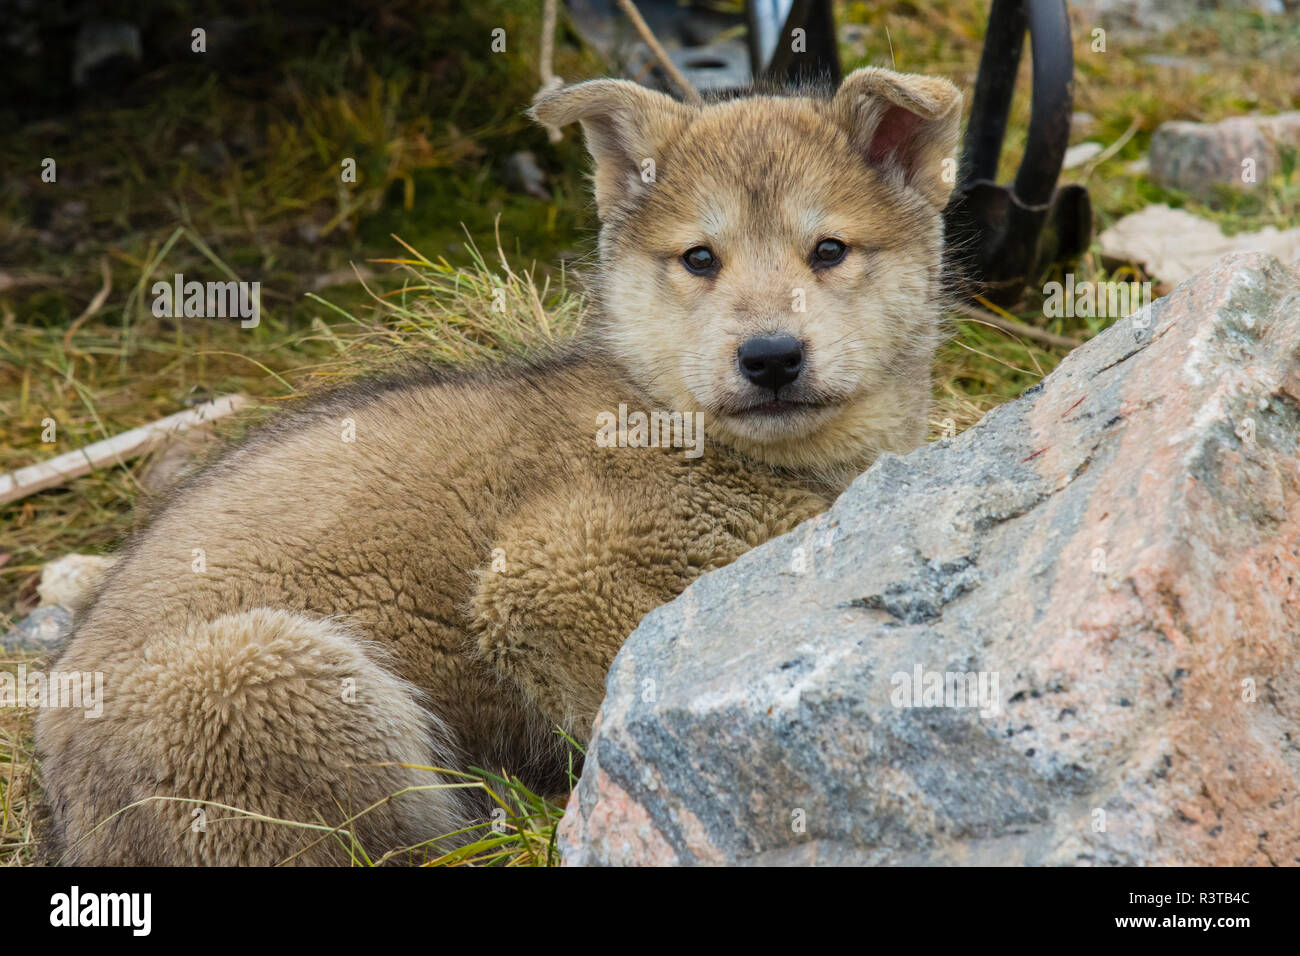 Greenland. Scoresby Sund. Ittoqqortoormiit. Sled dog puppy with thick fur. - Stock Image